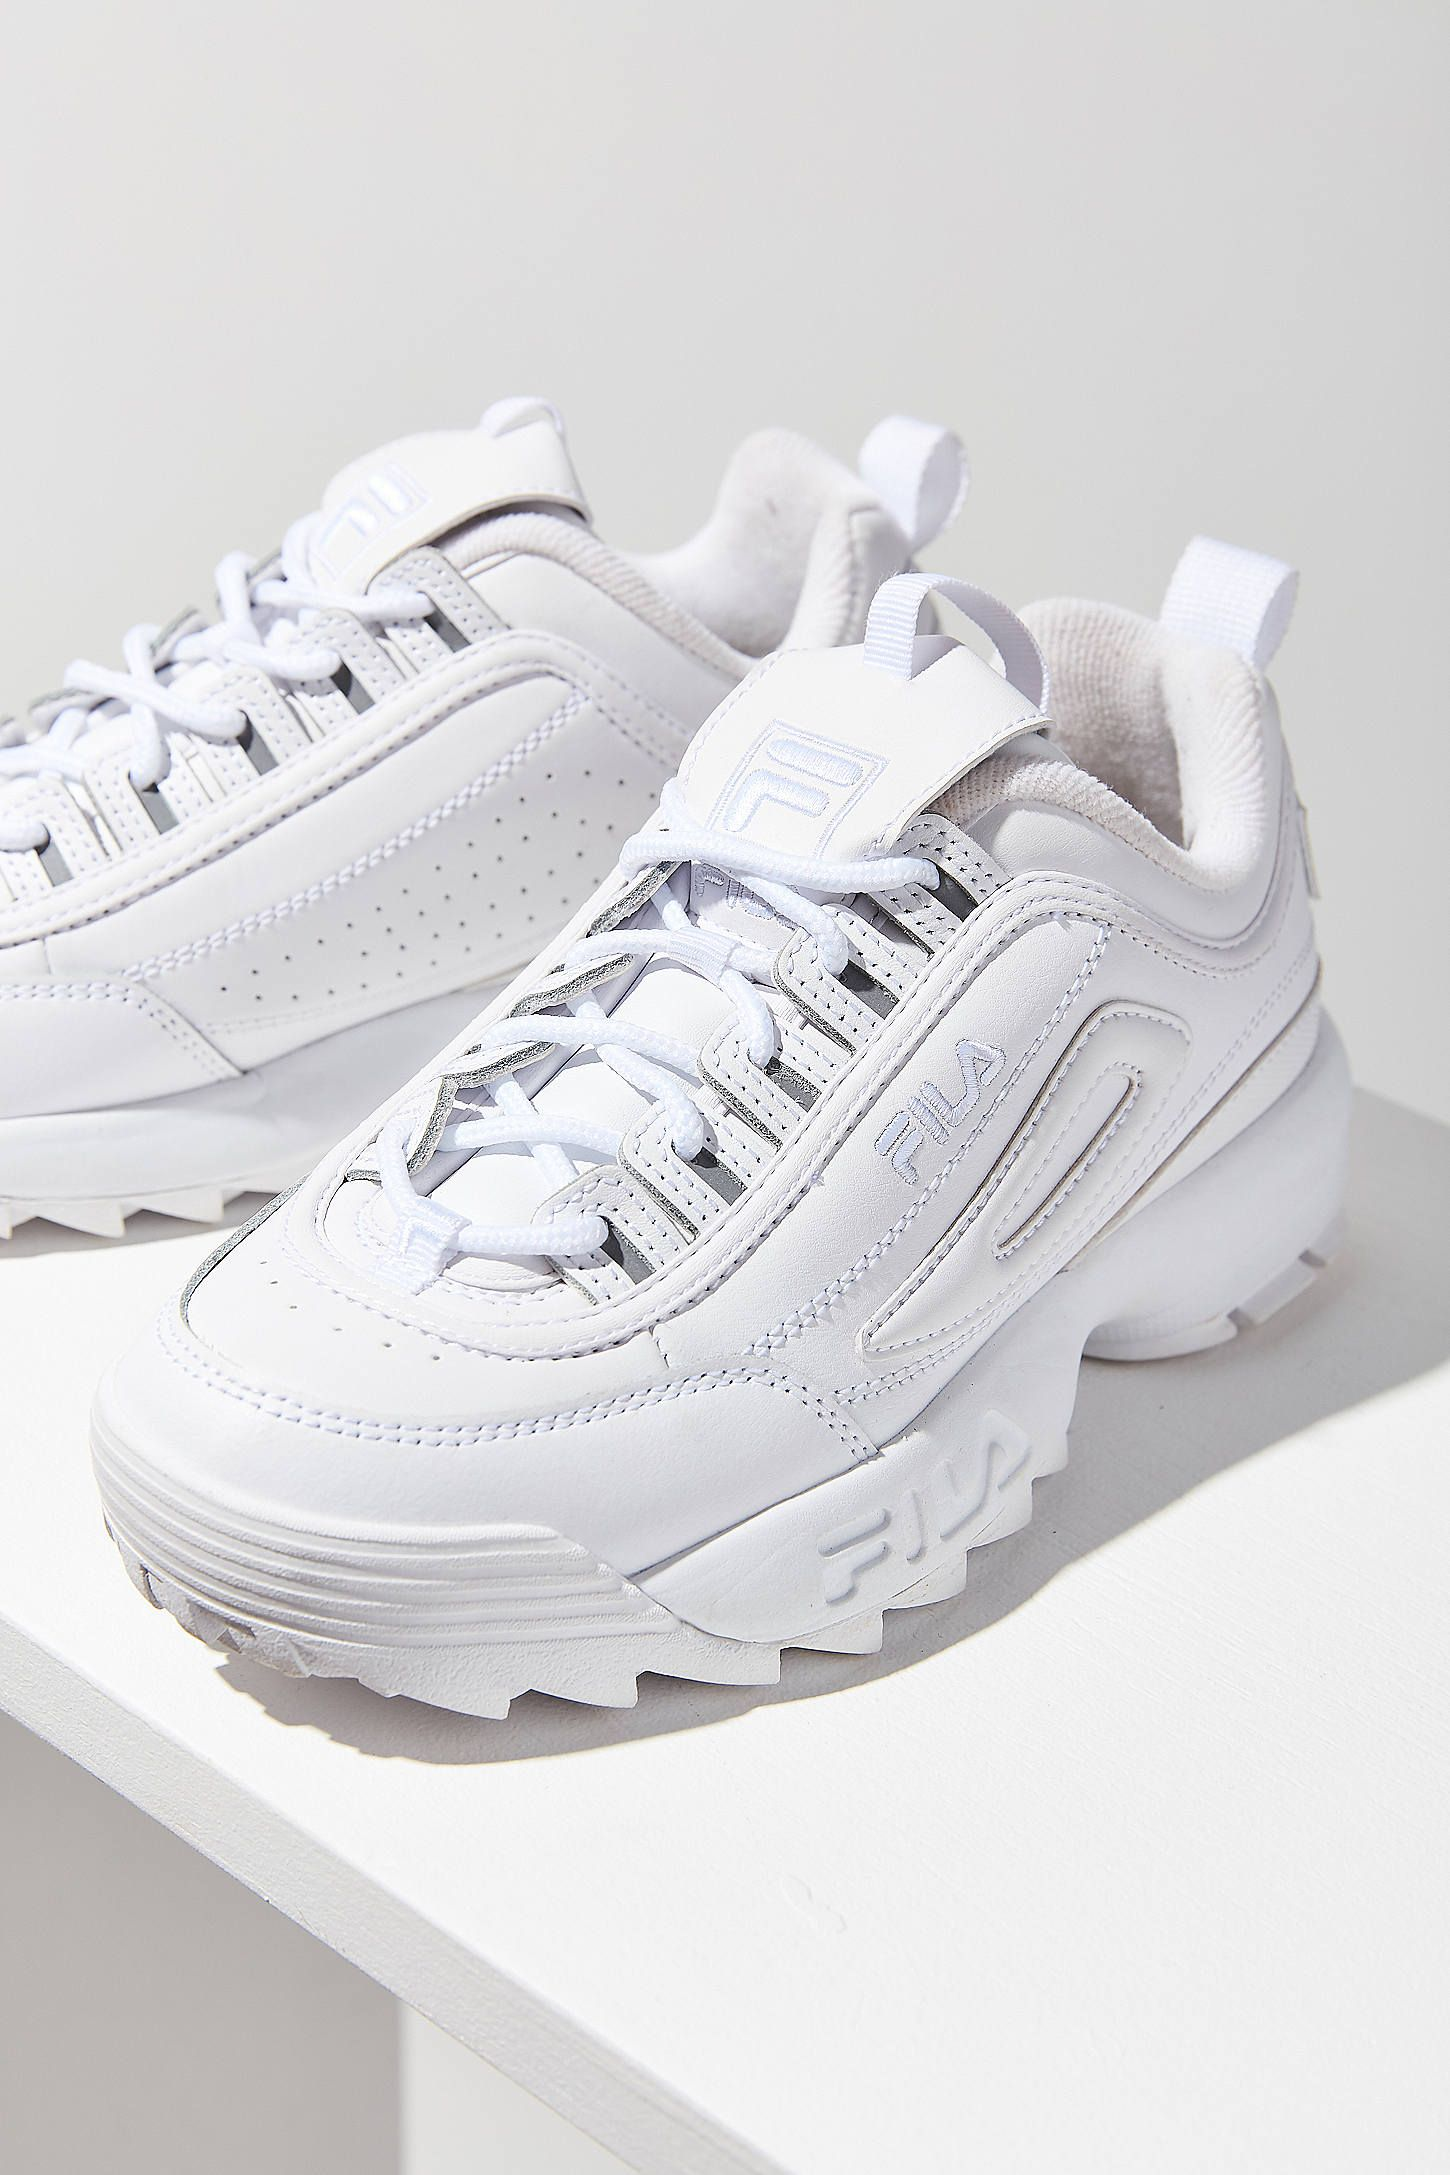 91e049f0679 Shop FILA Disruptor II Premium Mono Sneaker at Urban Outfitters today. We  carry all the latest styles